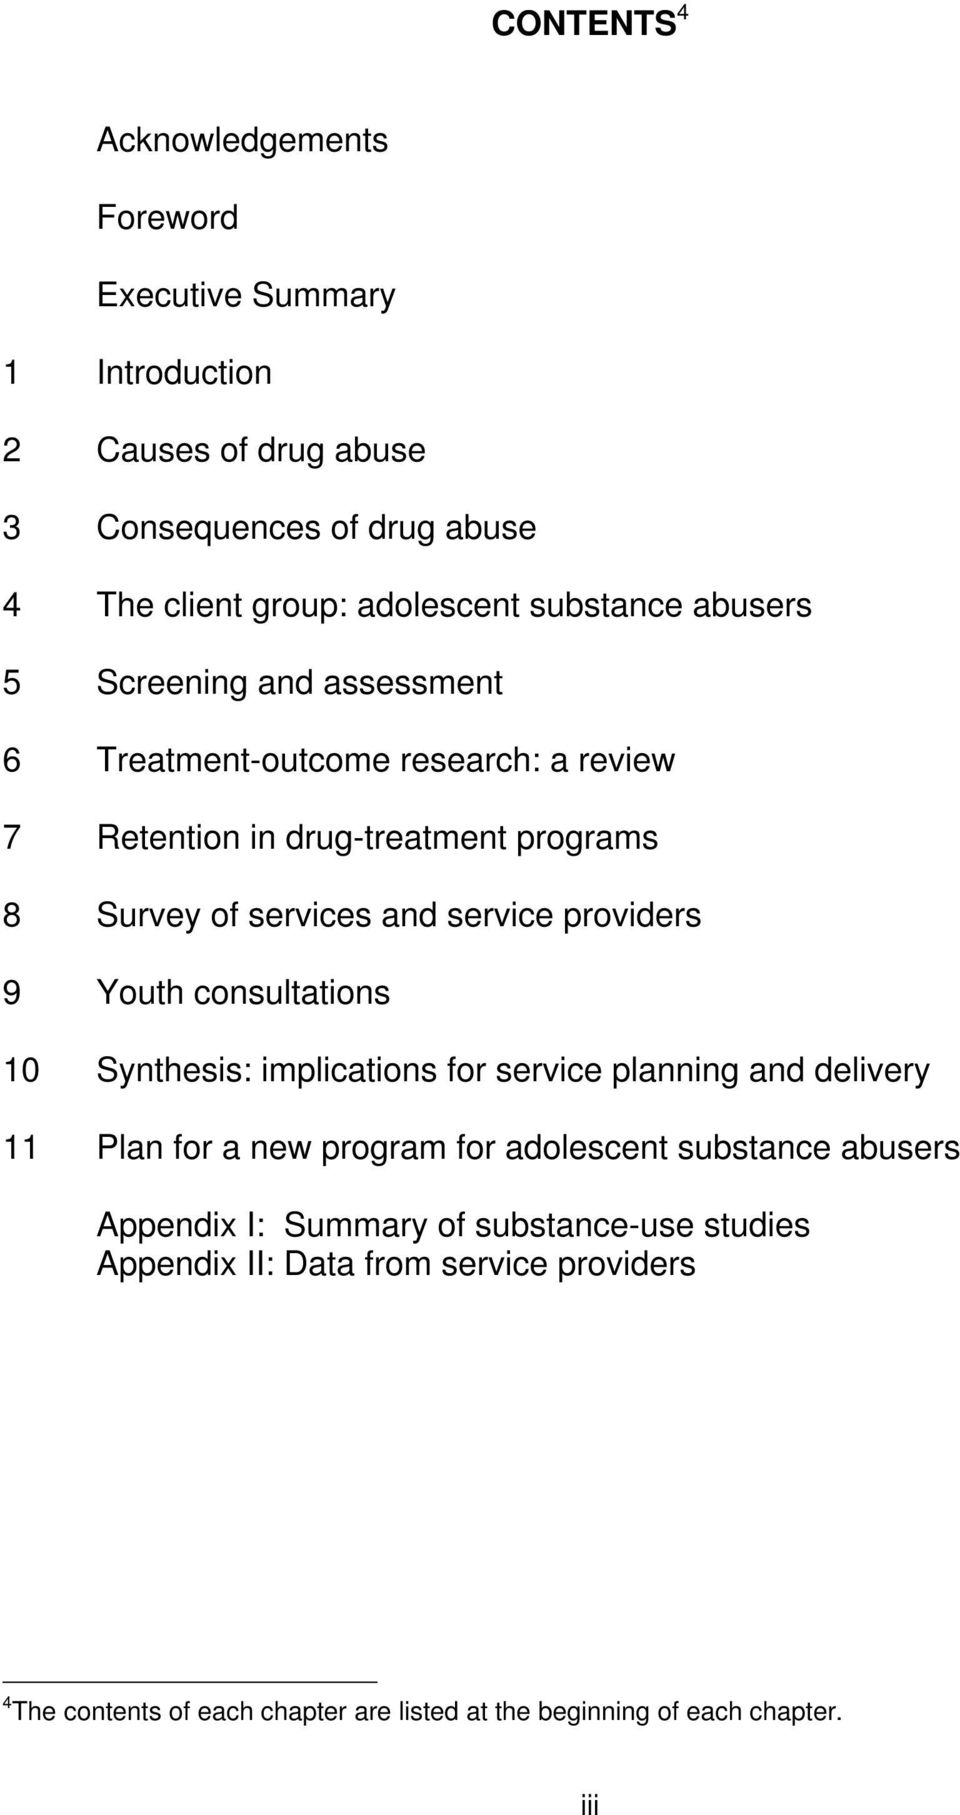 providers 9 Youth consultations 10 Synthesis: implications for service planning and delivery 11 Plan for a new program for adolescent substance abusers